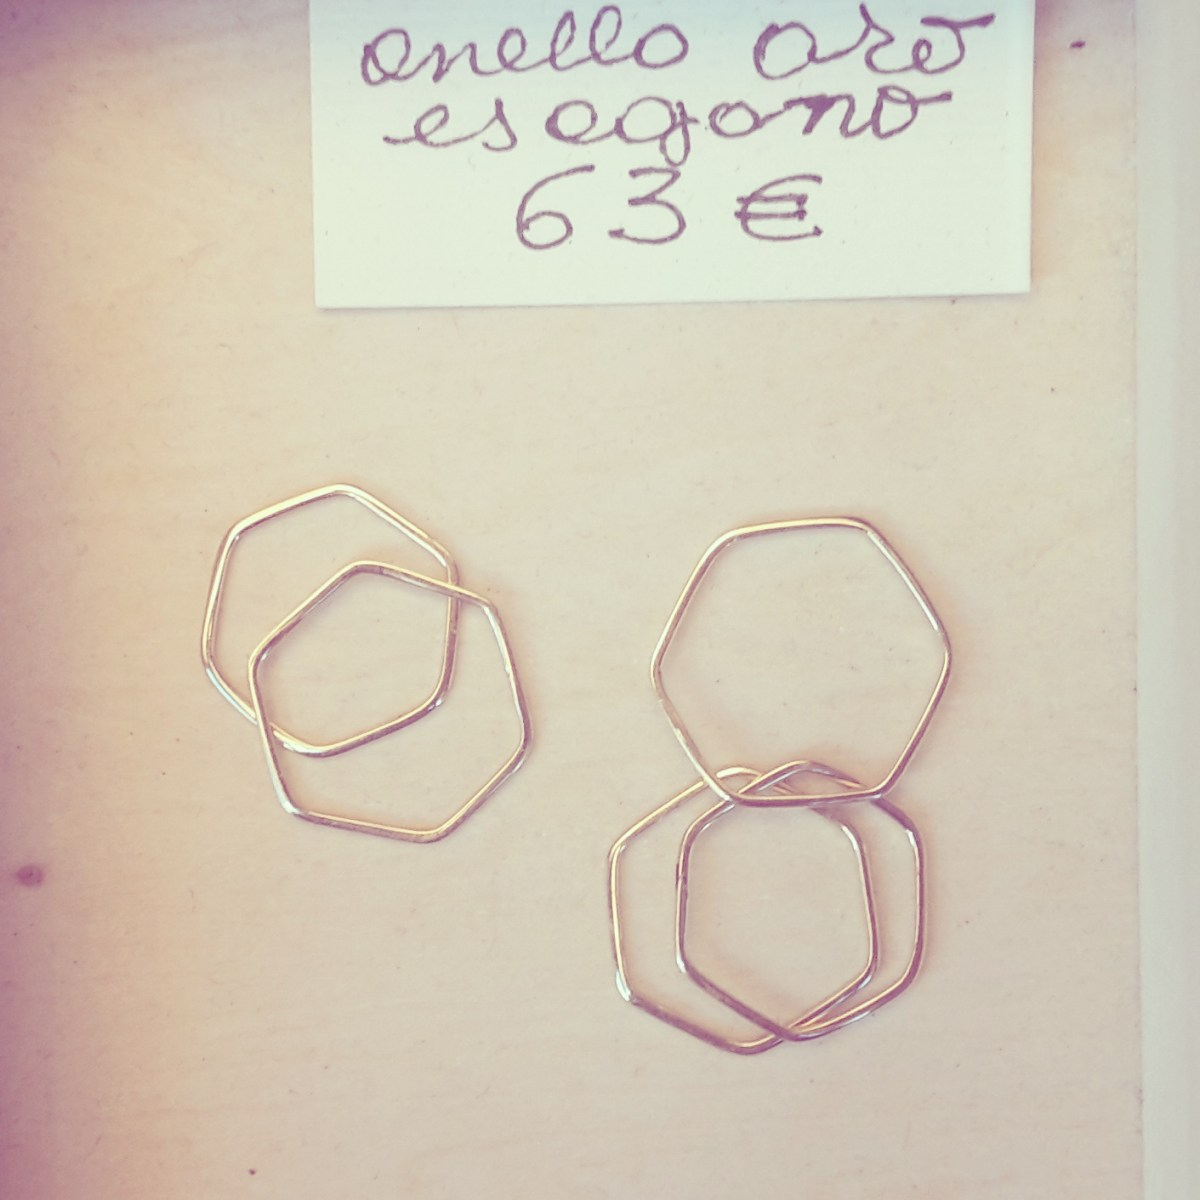 Minimalist gold rings - cross ring - hexagonal rings - curved oval plate customized ring _ maschio gioielli milano (2)